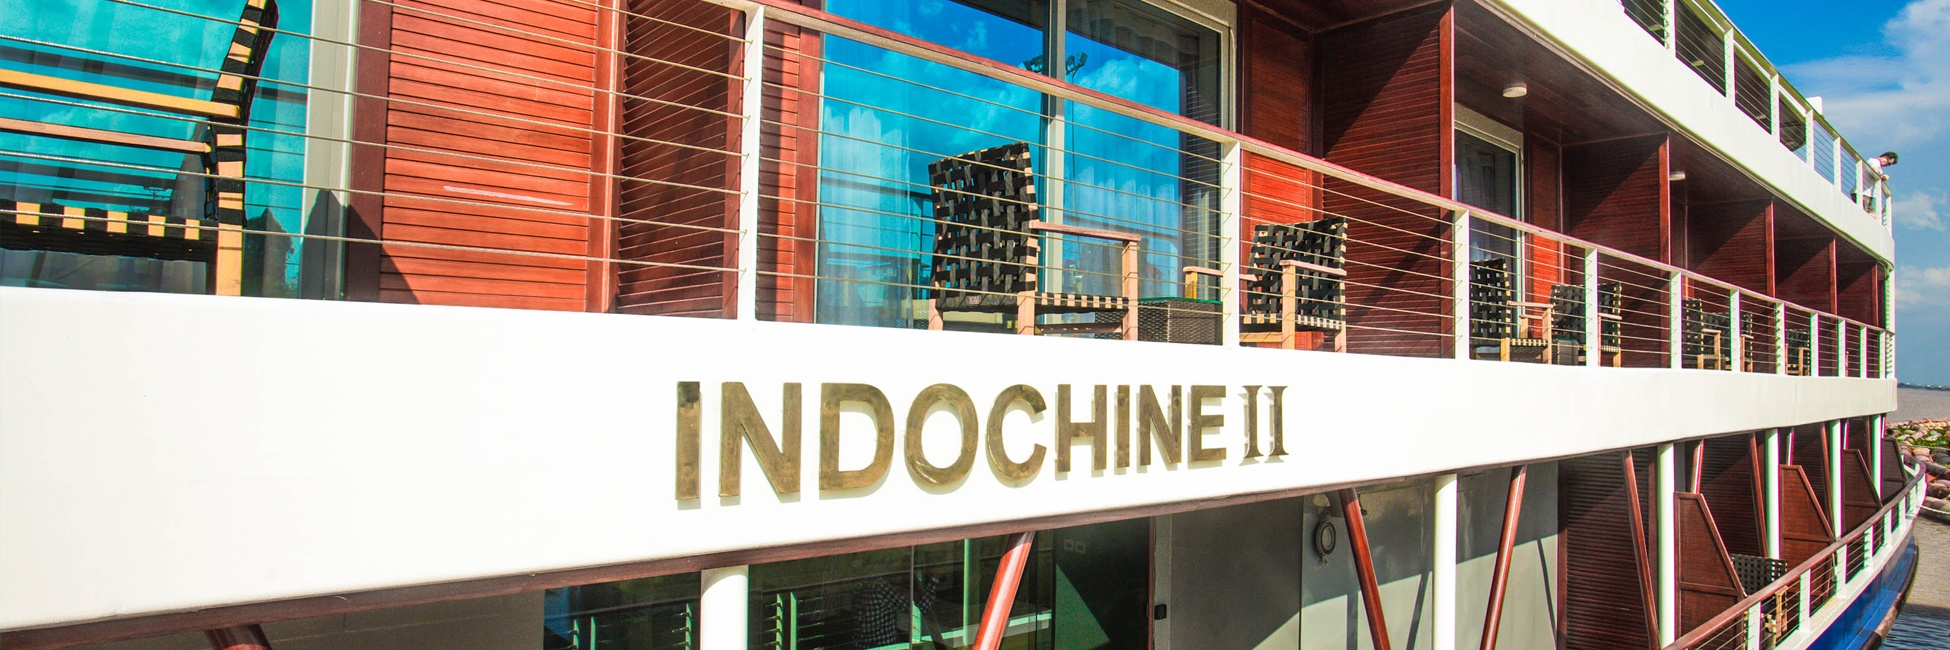 Détail du RV Indochine II